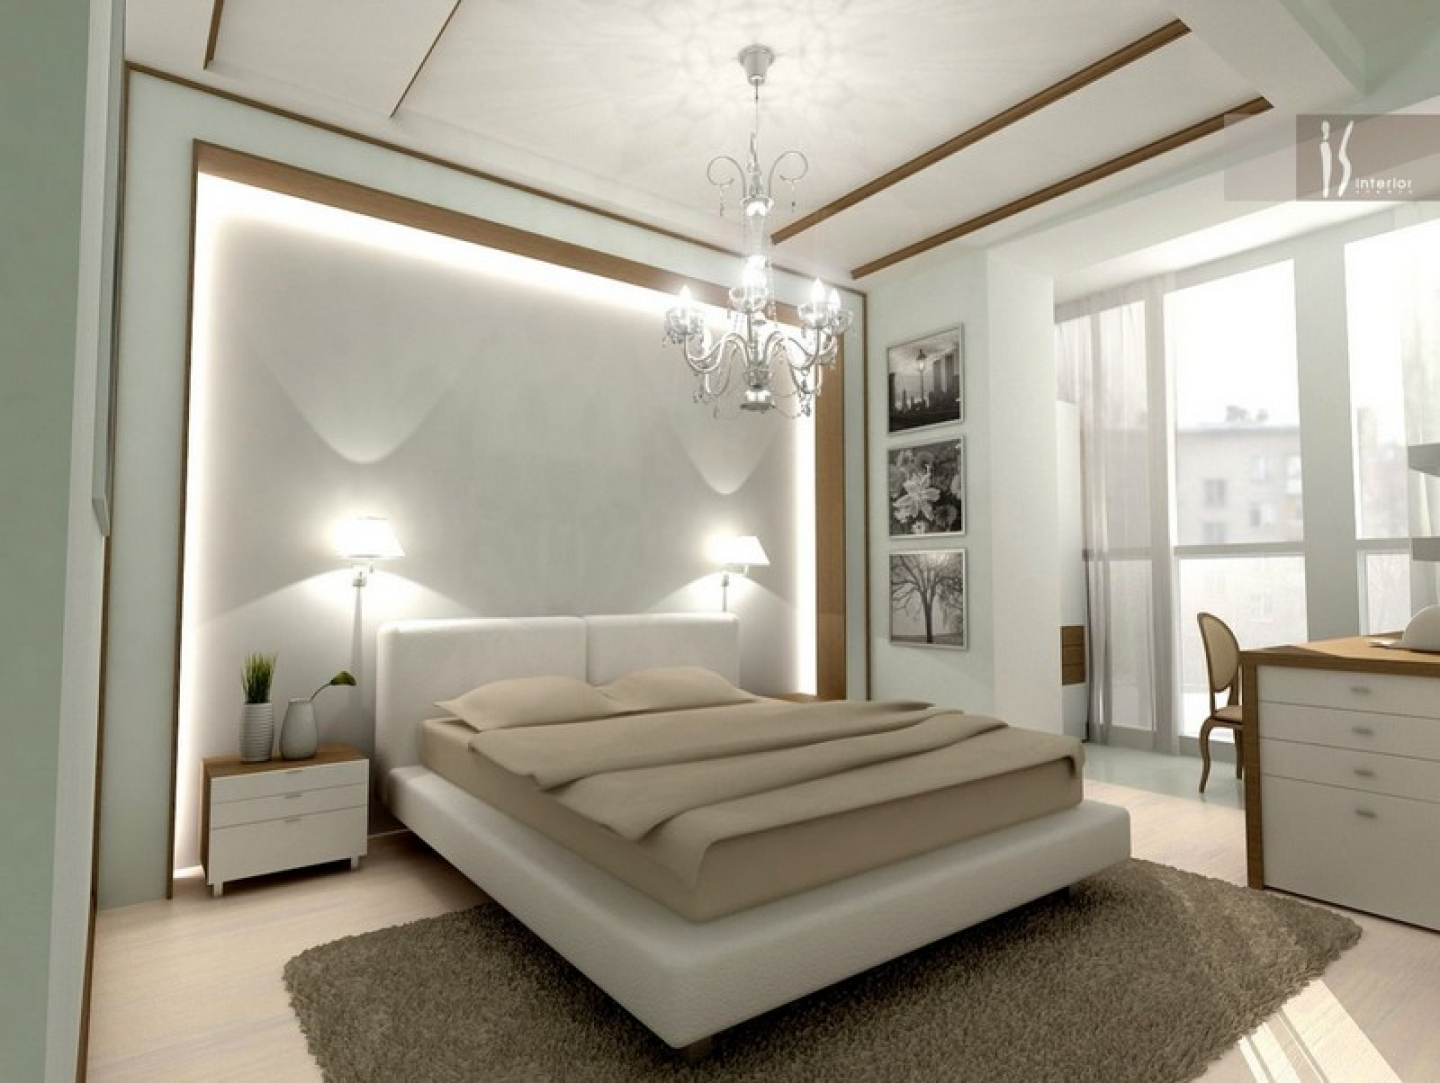 charm-decoration-for-inspiring-bedroom-style-rug-curtain-daily